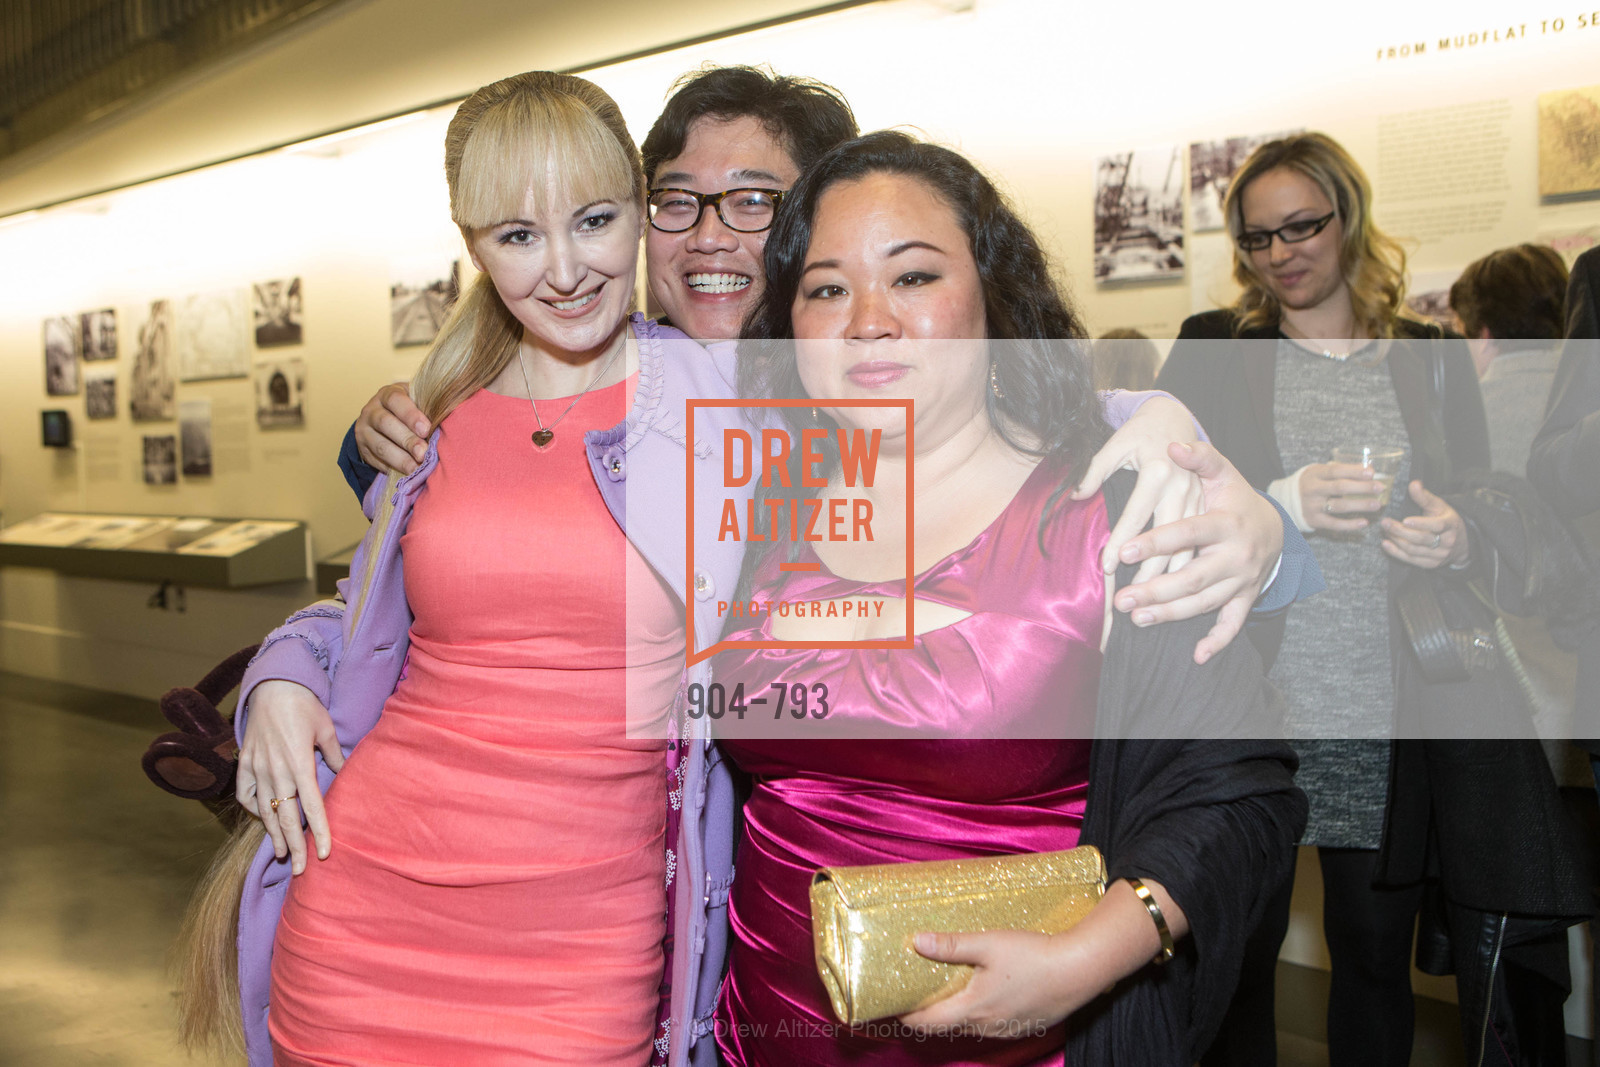 Shannyn Bessoni, Christopher Tse, SF BRAVO CLUB Sneak Peek at the EXPLORATORIUM, US, April 22nd, 2015,Drew Altizer, Drew Altizer Photography, full-service agency, private events, San Francisco photographer, photographer california